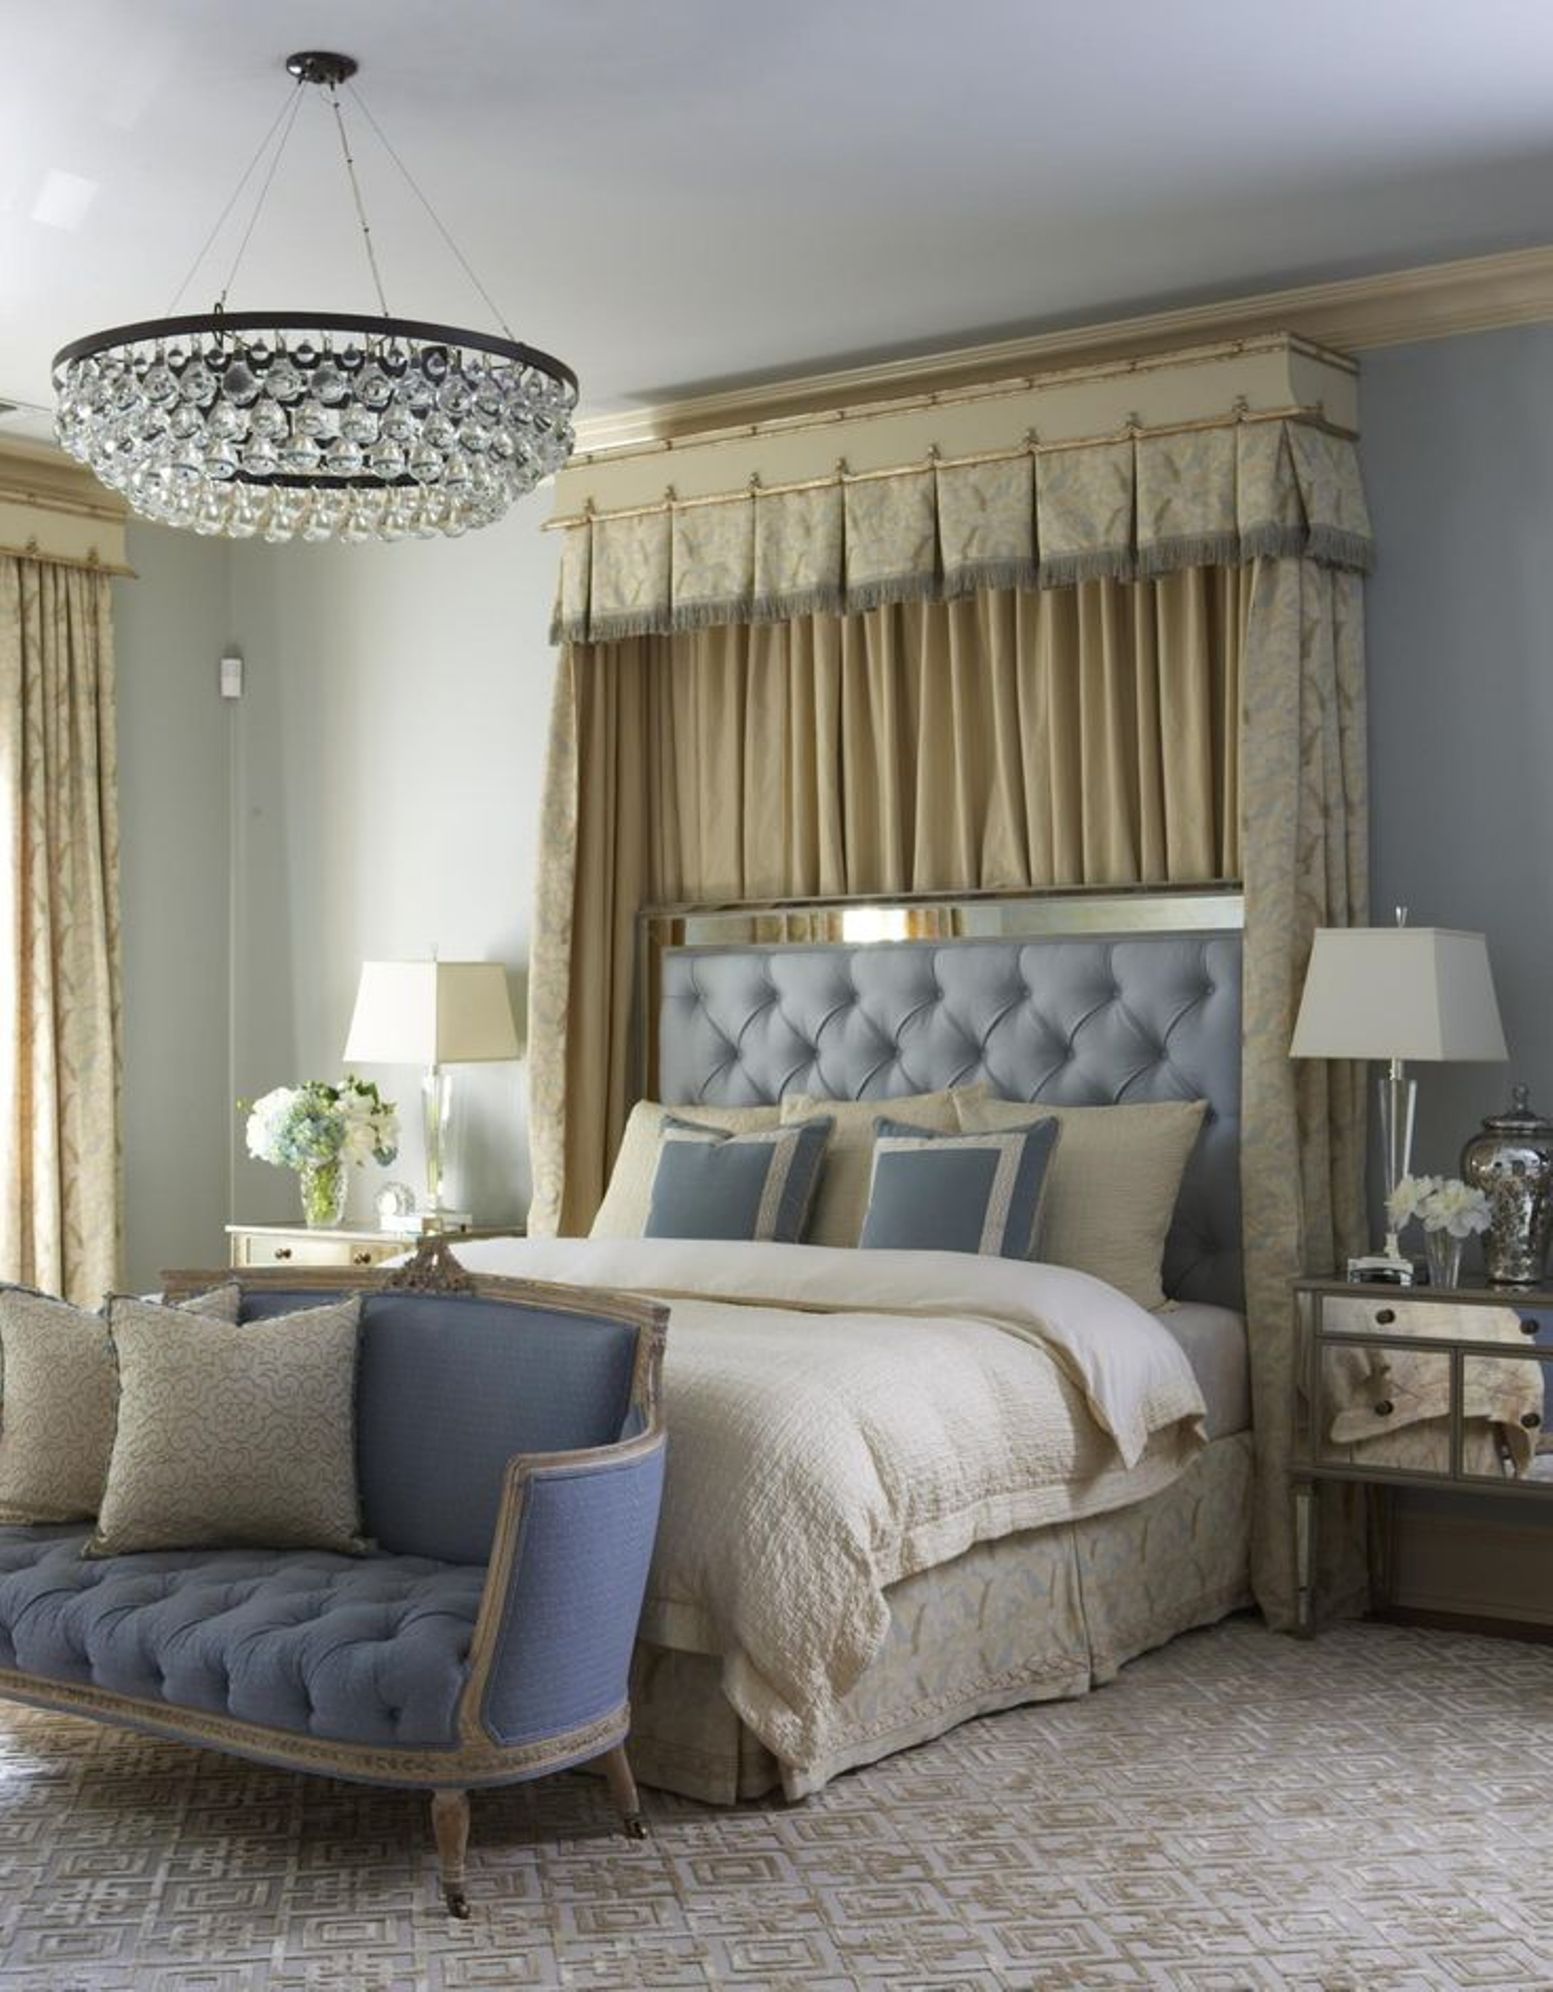 Romantic Elegant Bedroom Design Ideas Couple Romantic Romantic Unique Elegant Bedrooms Designs Inspiration